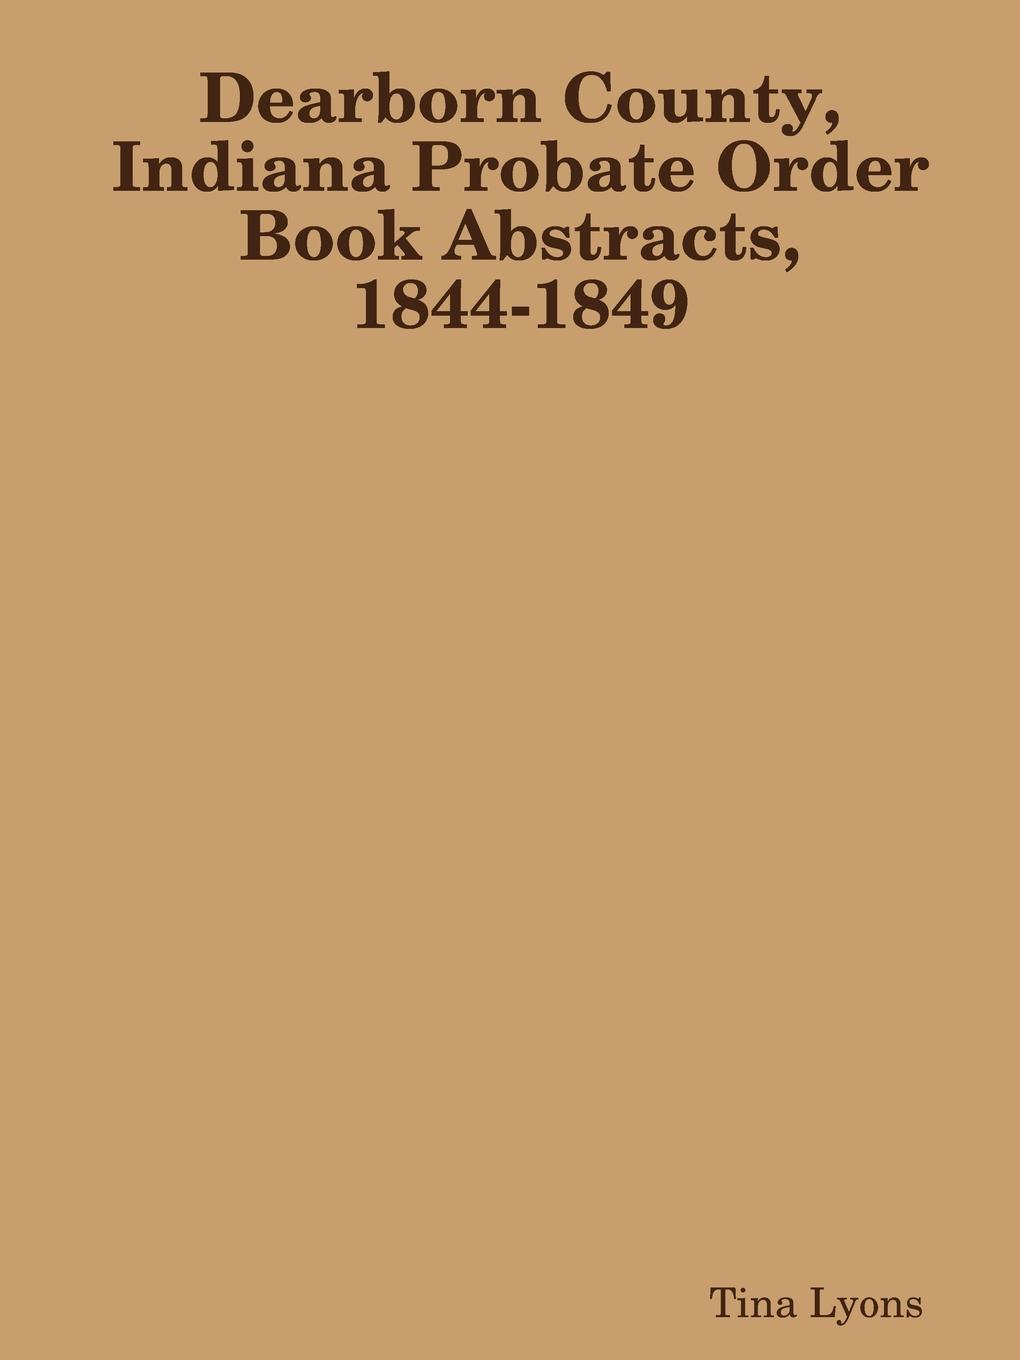 Tina Lyons Dearborn County, Indiana Probate Order Book Abstracts, 1844-1849 russell fishkind j aarp probate wars of the rich and famous an insider s guide to estate and probate litigation